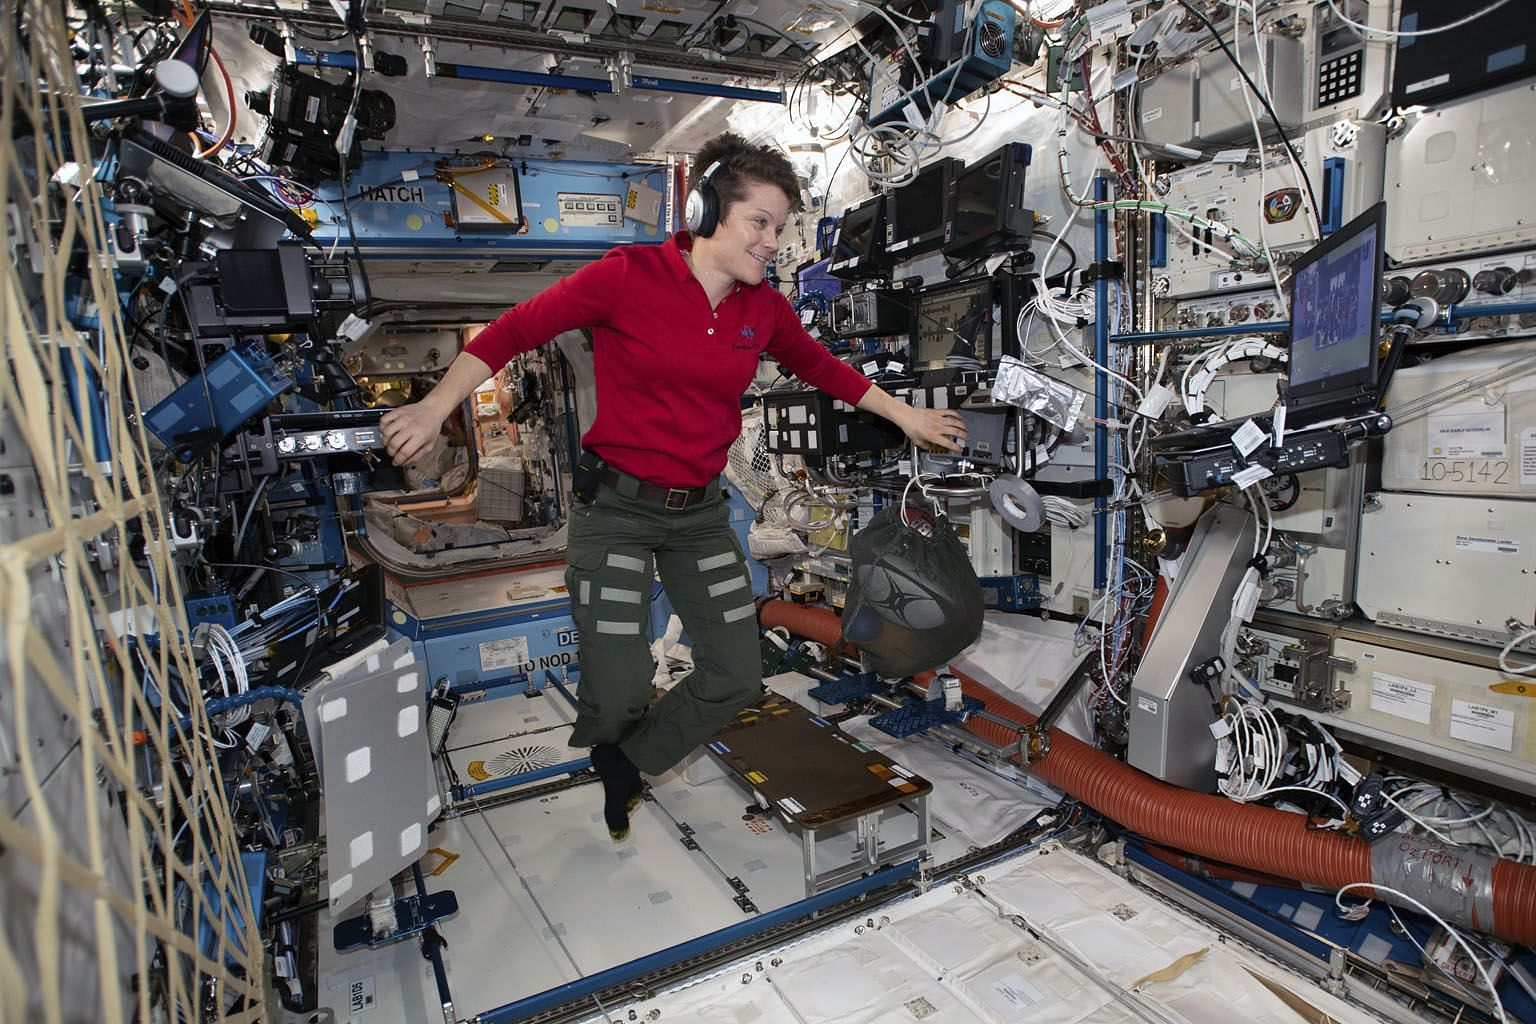 Astronaut Anne McClain looking at a laptop computer screen in the US Destiny laboratory module of the International Space Station. Nasa is checking a claim that she improperly accessed the bank account of her estranged spouse from the space station.